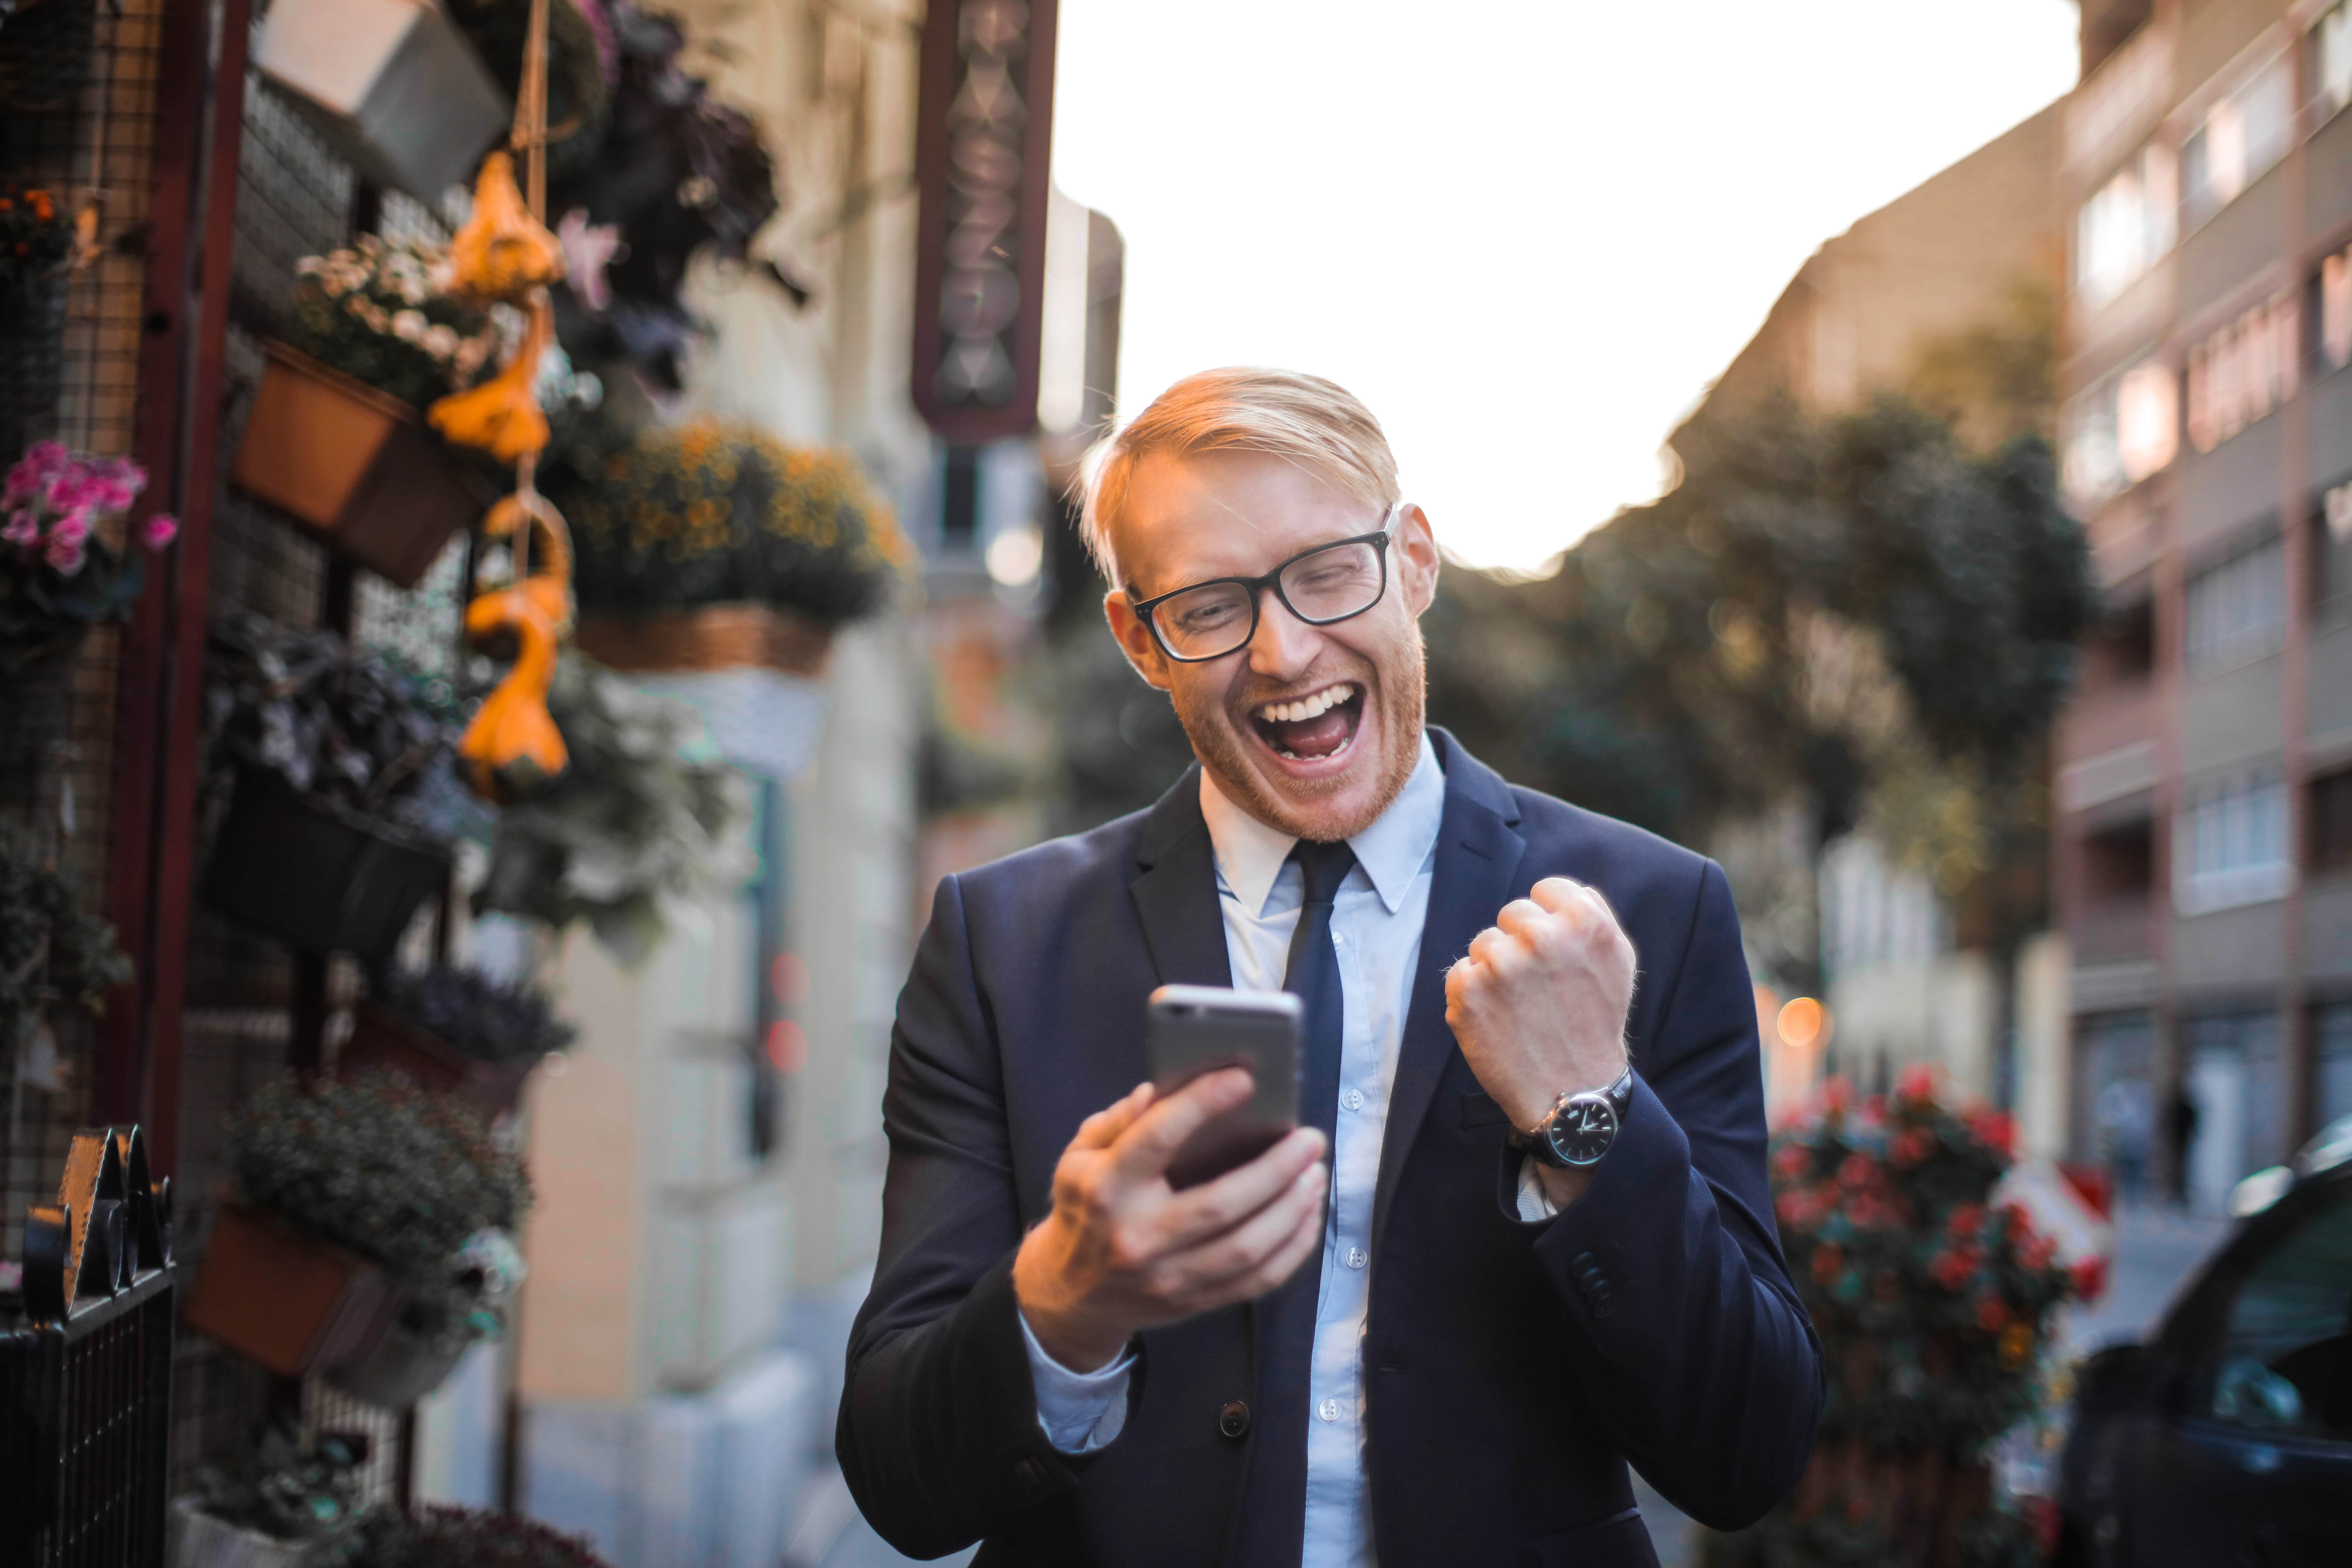 Man Holding Smartphone And Cheering